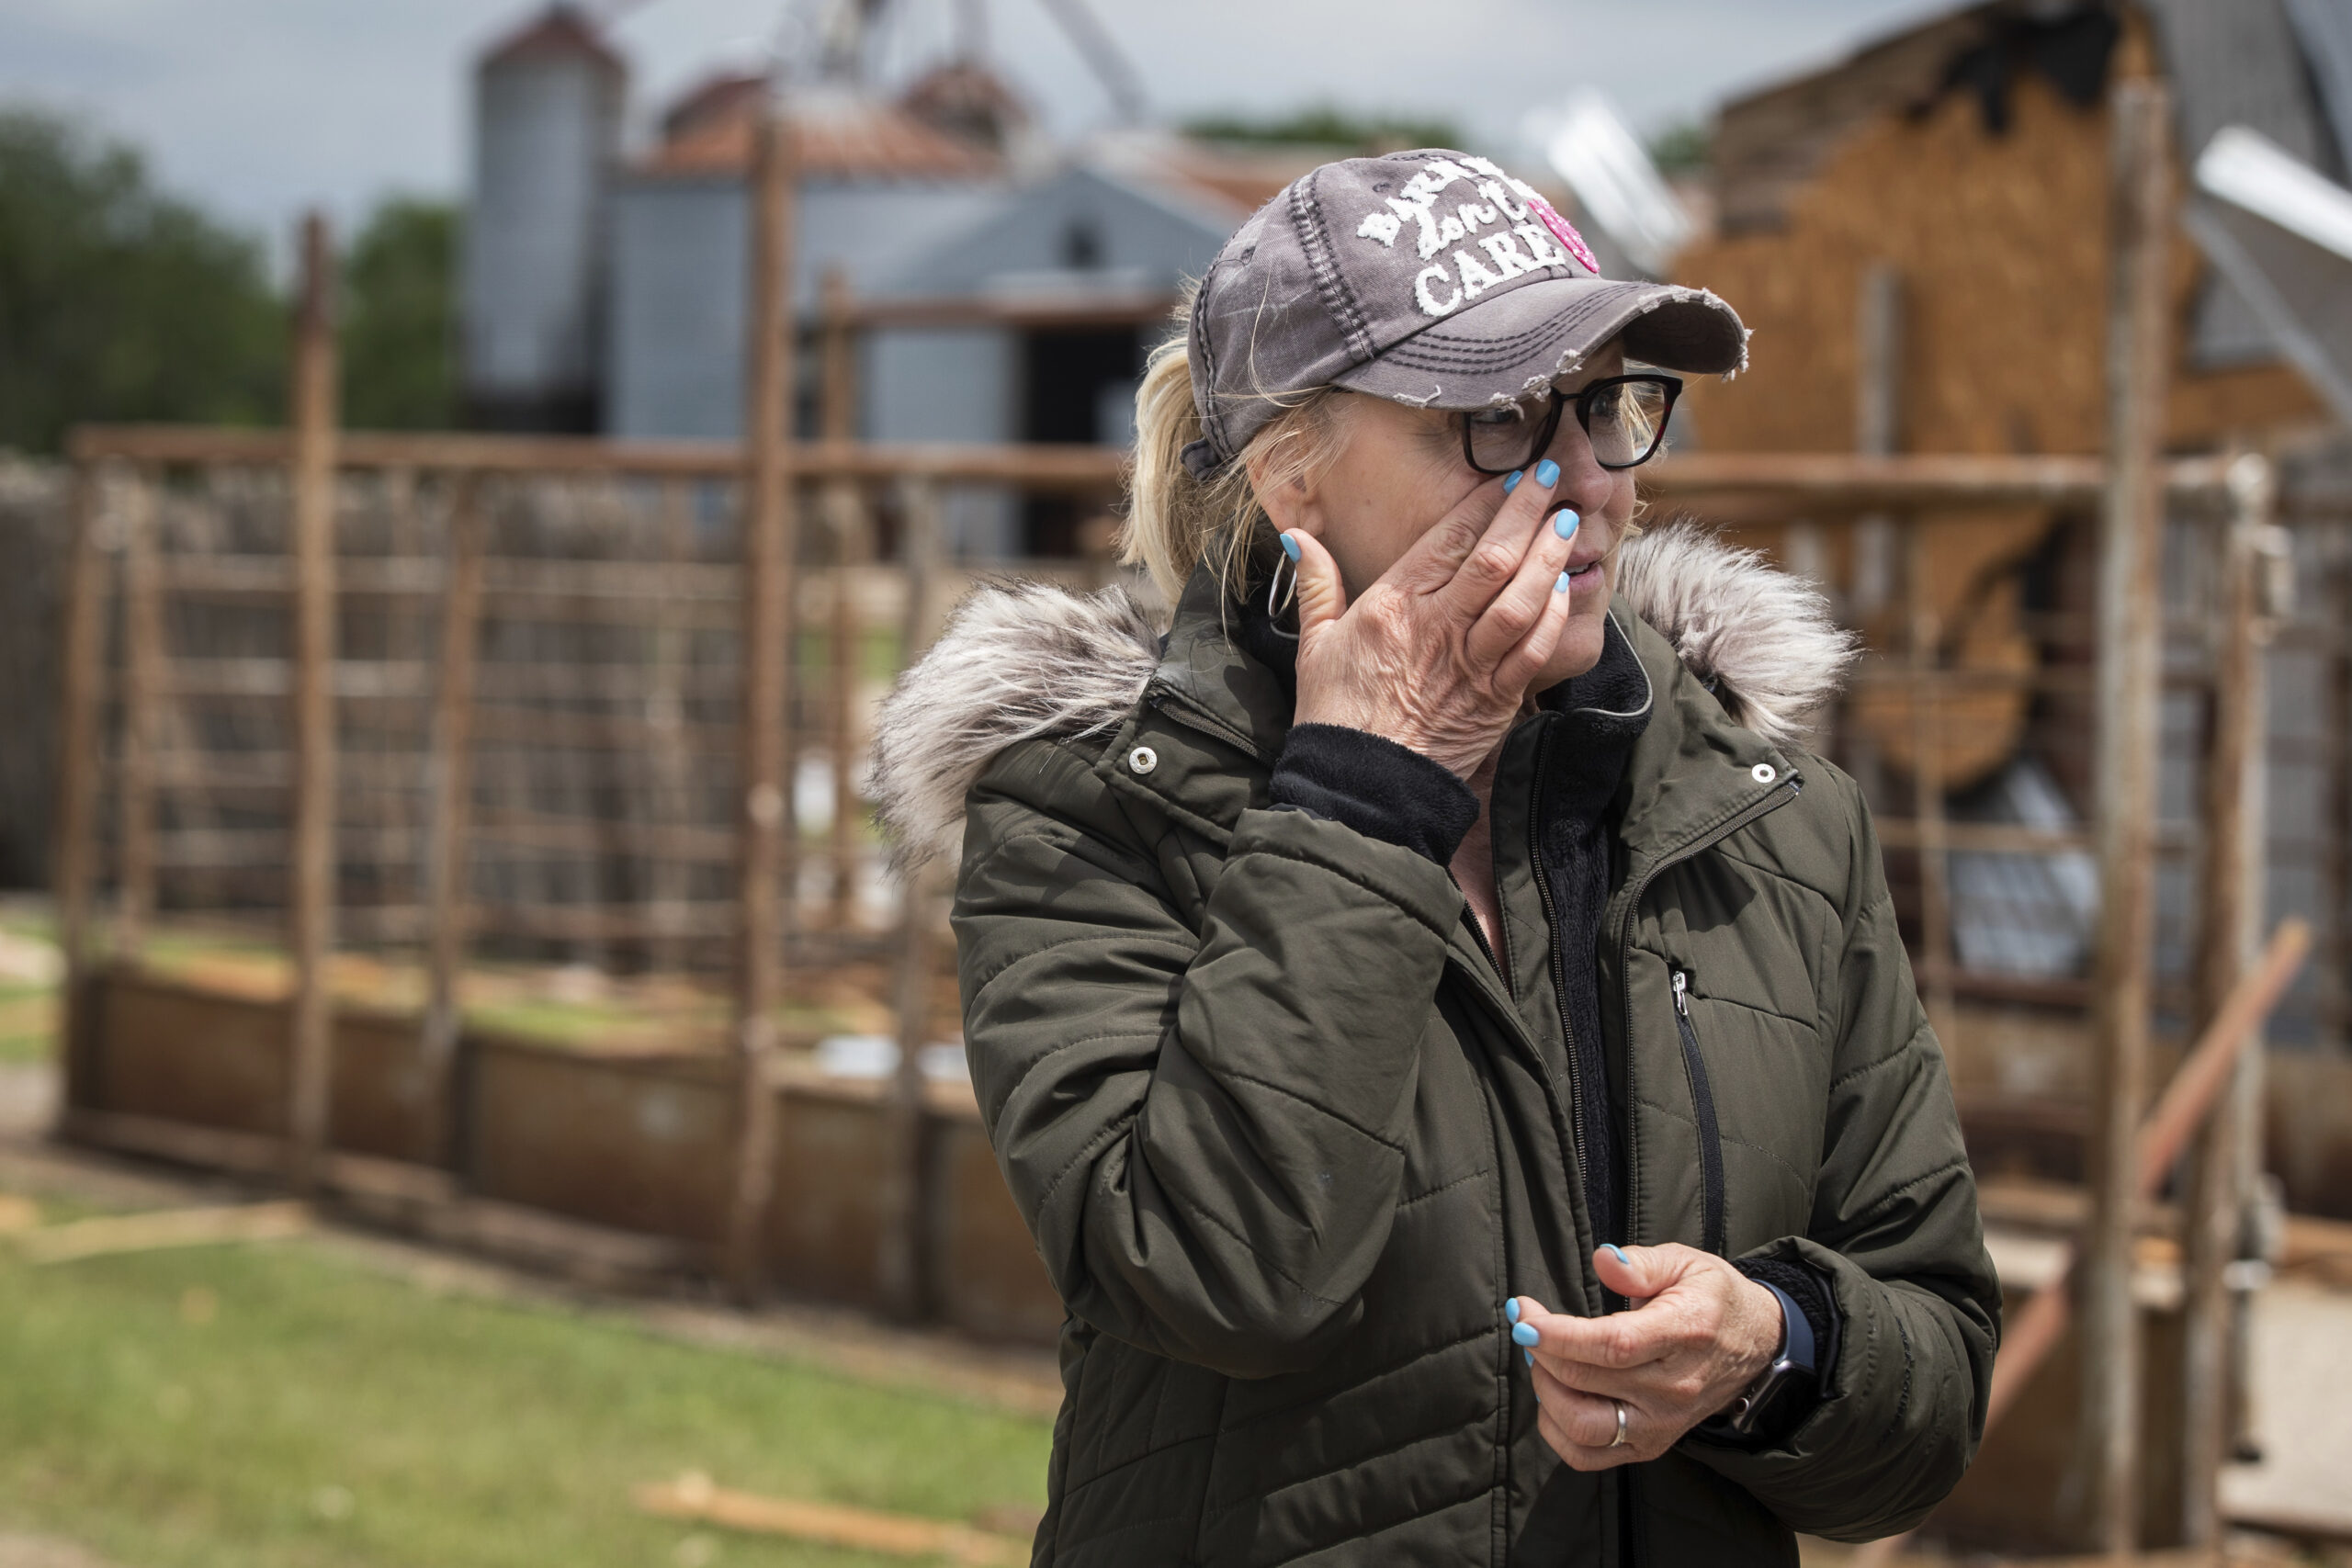 Cathy Haley wipes away tears while looking over damage caused by a tornado Tuesday, May 4, 2021, at Barn on the Brazos in Blum, Texas. (Yffy Yossifor/Star-Telegram via AP)